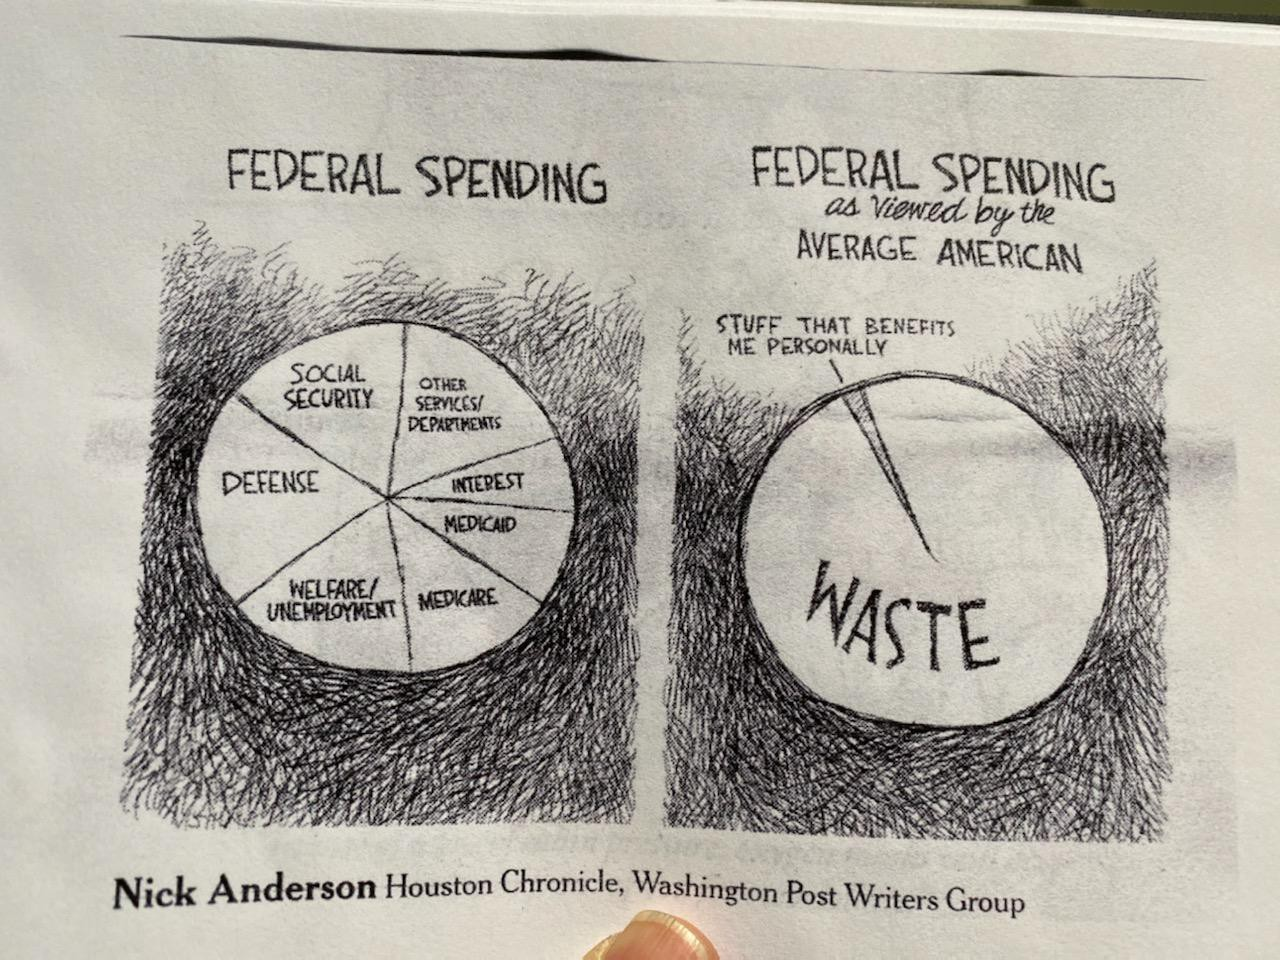 """2 pie charts portraying real federal spending vs what Americans think; only 2 slices: """"Waste"""" and """"stuff that benefits me."""""""